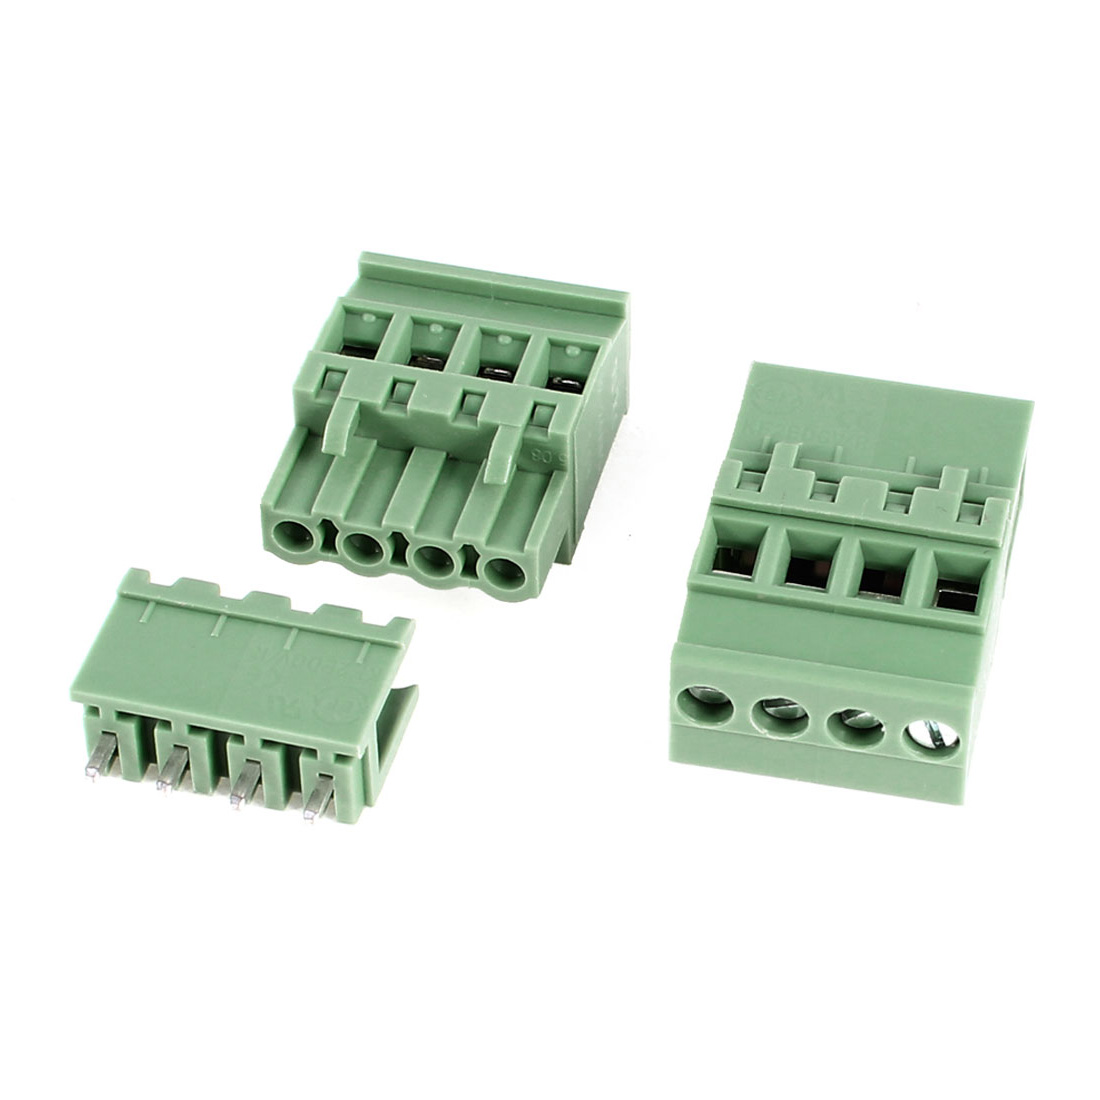 2Pcs 2EDG5.08-4P 5.08mm Pitch 4 Straight Pins Female and Male Wire Pluggable Terminal Barrier Strip Block Connector 300V 10A